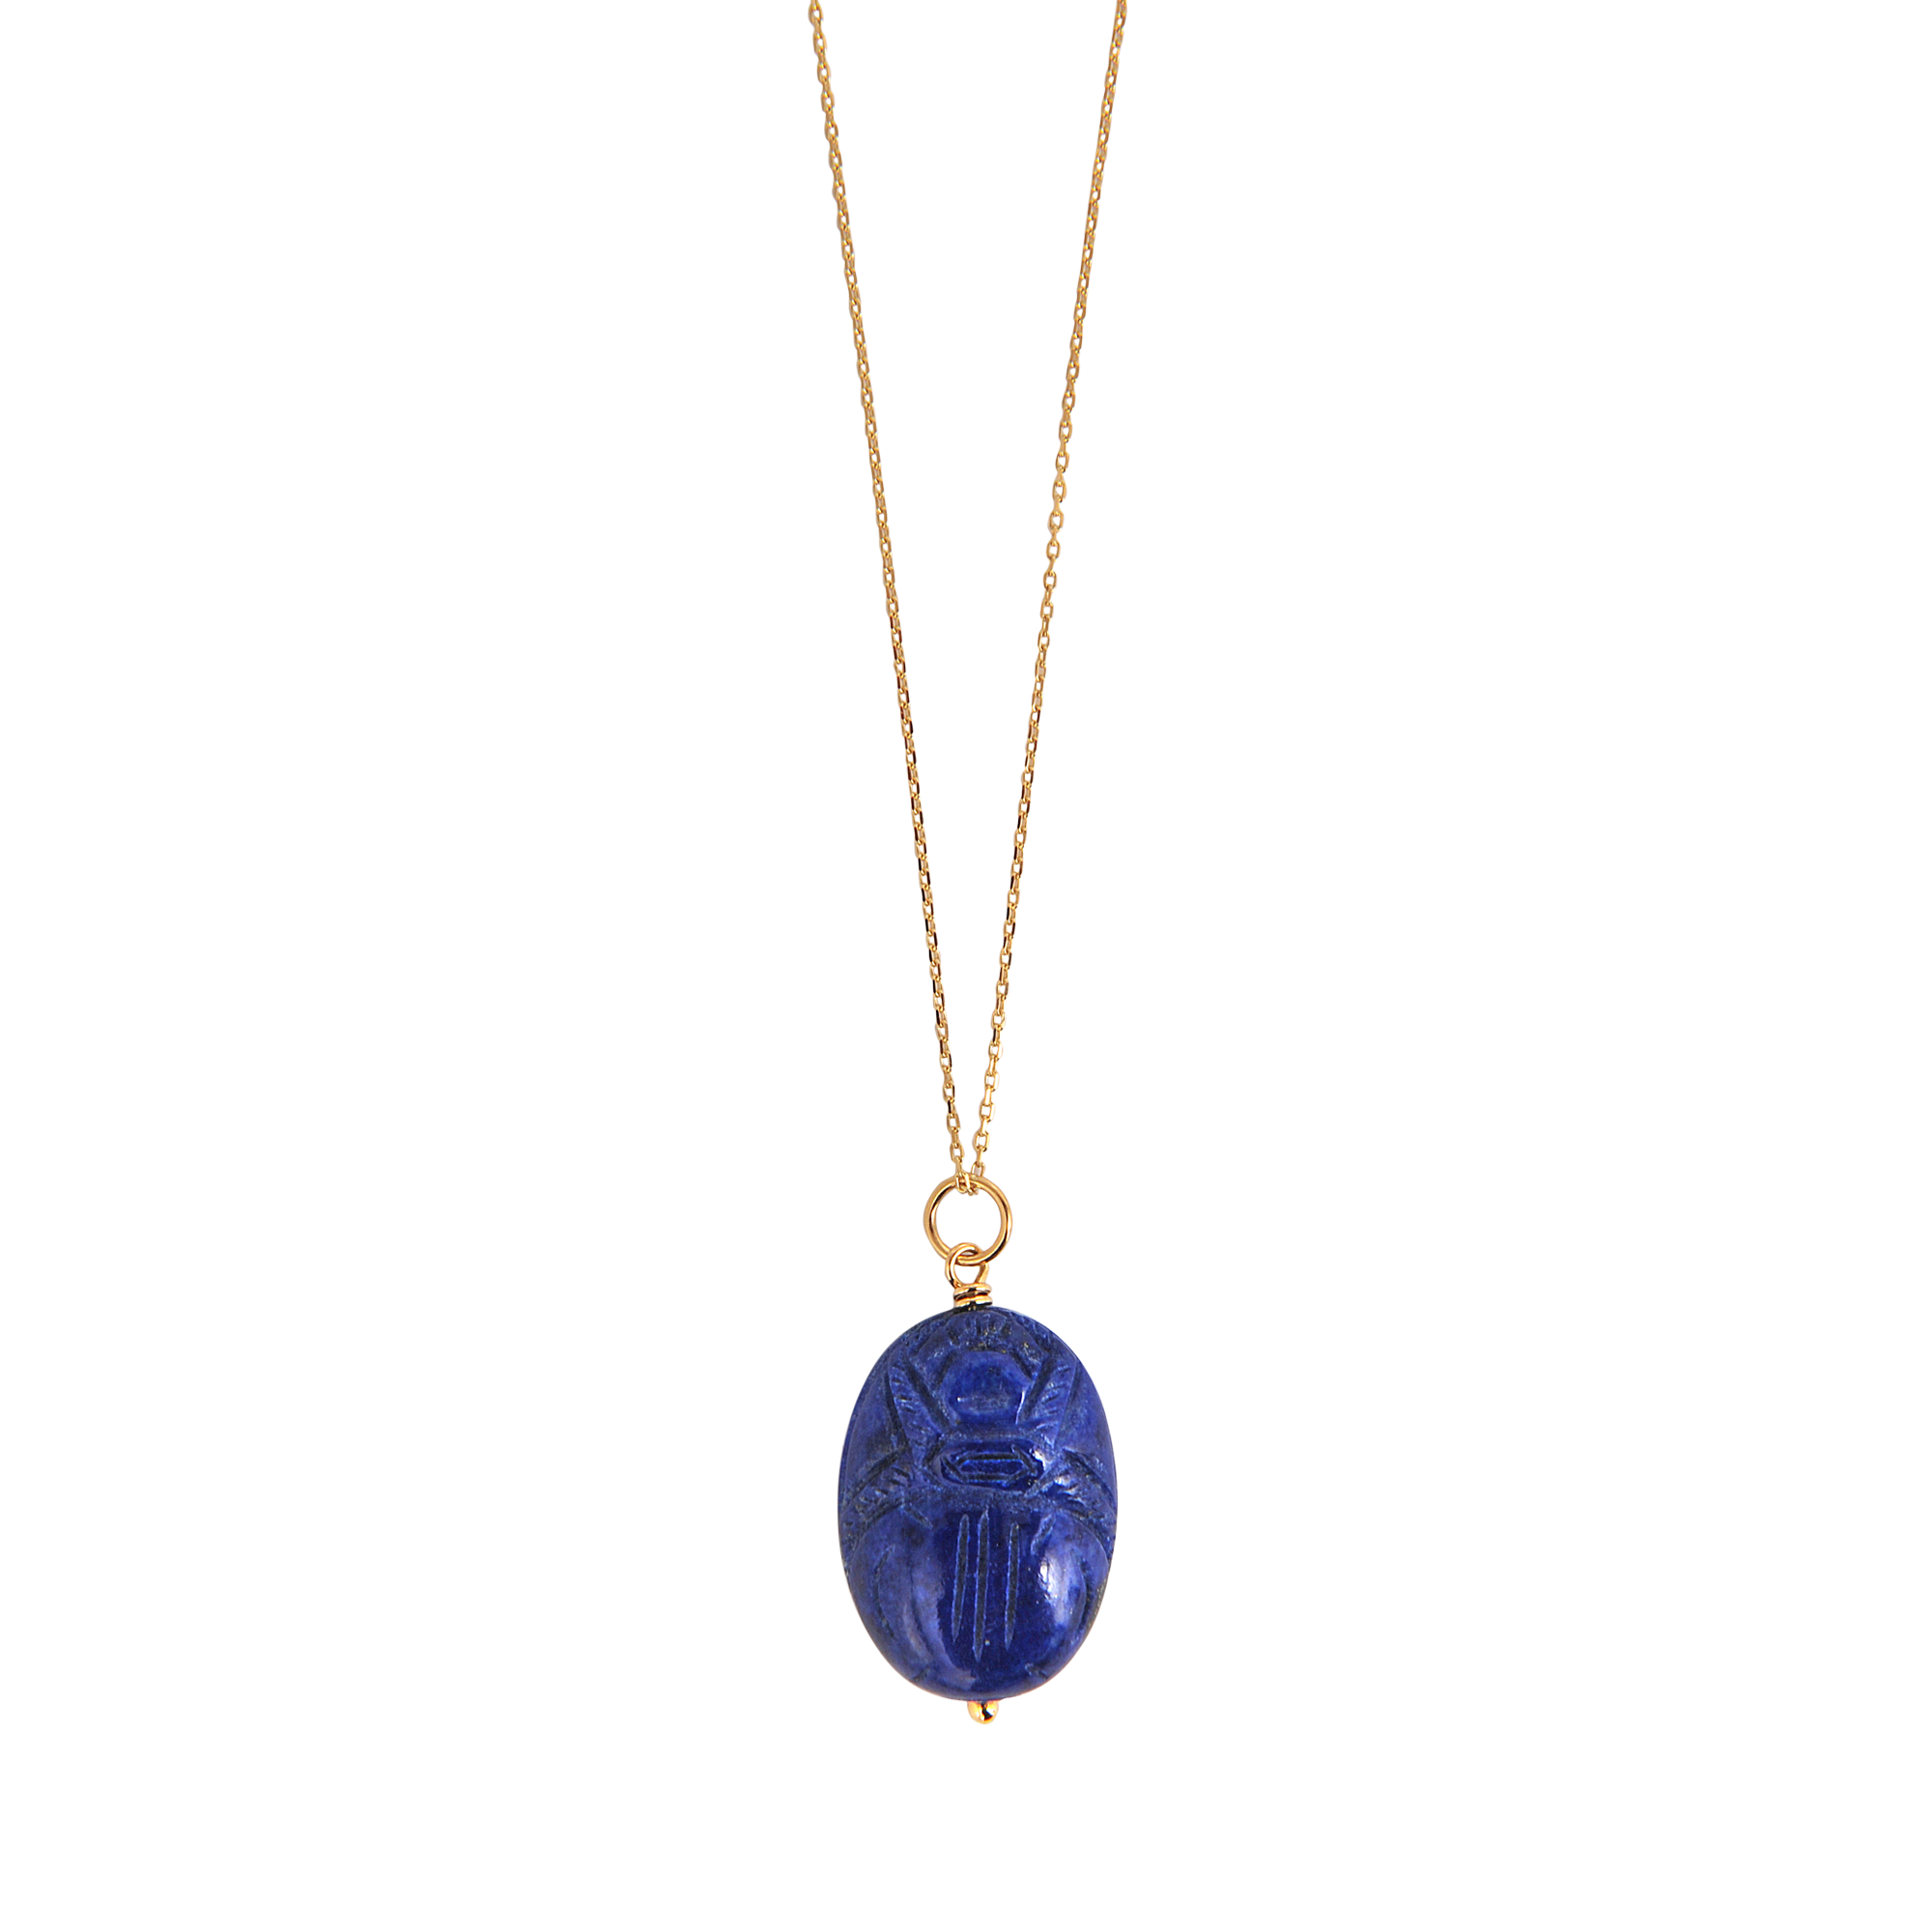 vavavoo blue with products pamela chain gold lapis pendant necklace